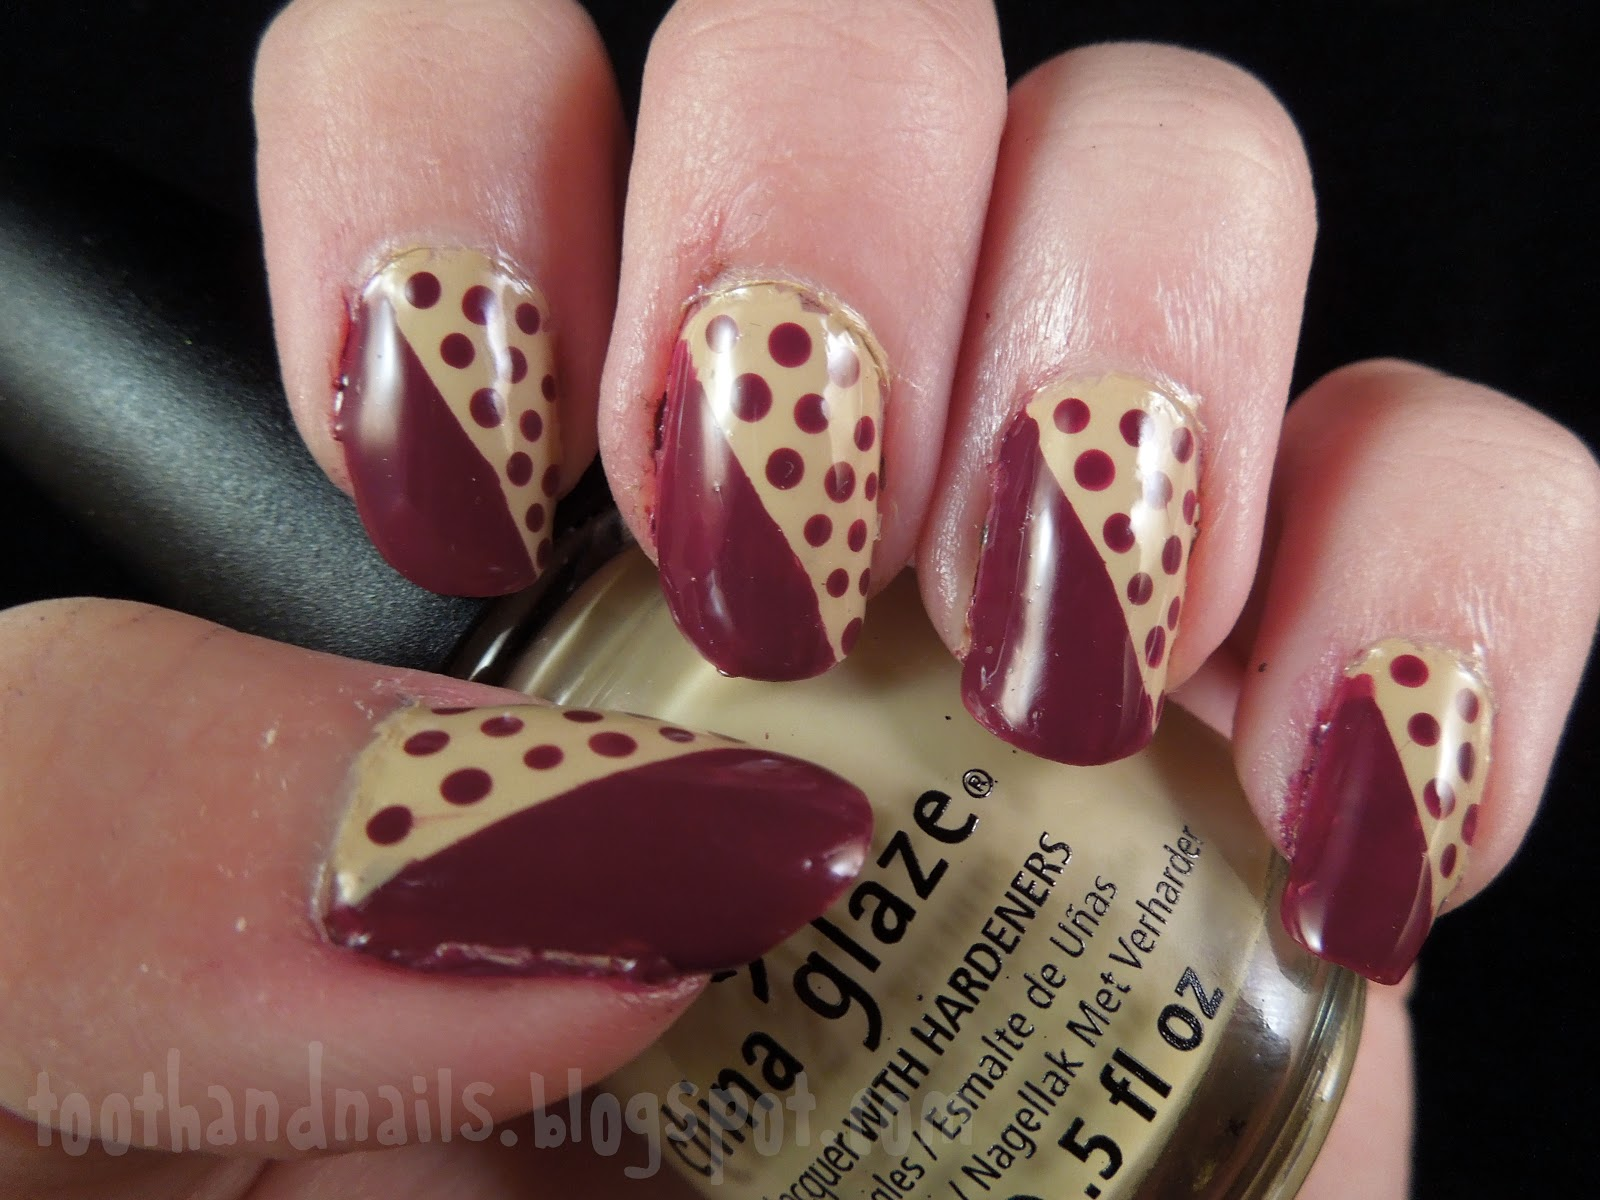 Tooth and nails nude and maroon nude and maroon prinsesfo Images